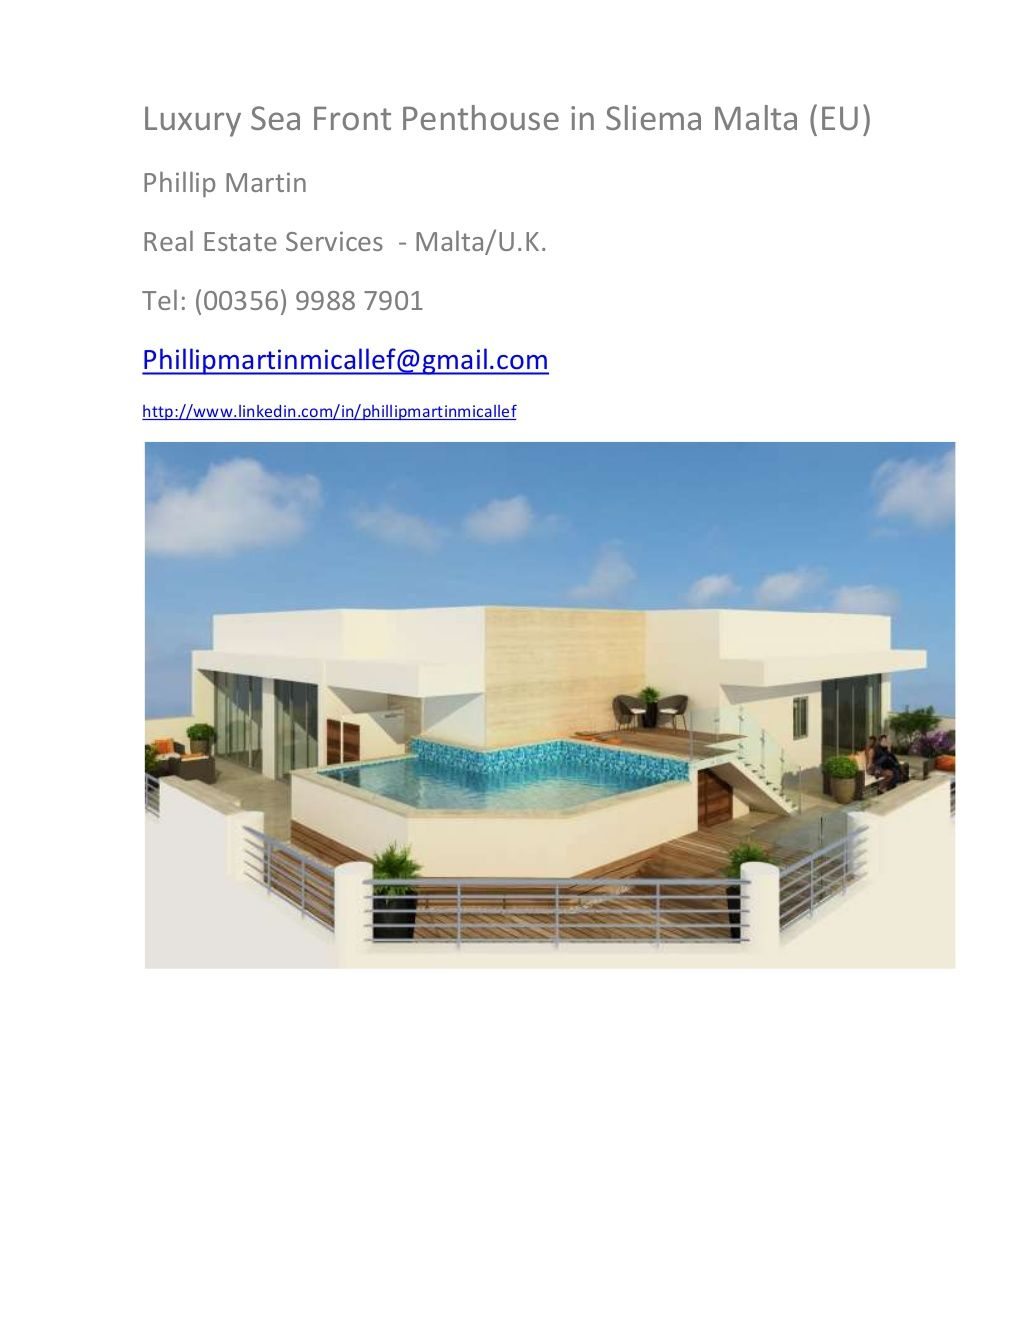 Salle De Bain Slide Share ~ luxury sea front penthouse sliema malta 16541378 by phillip martin